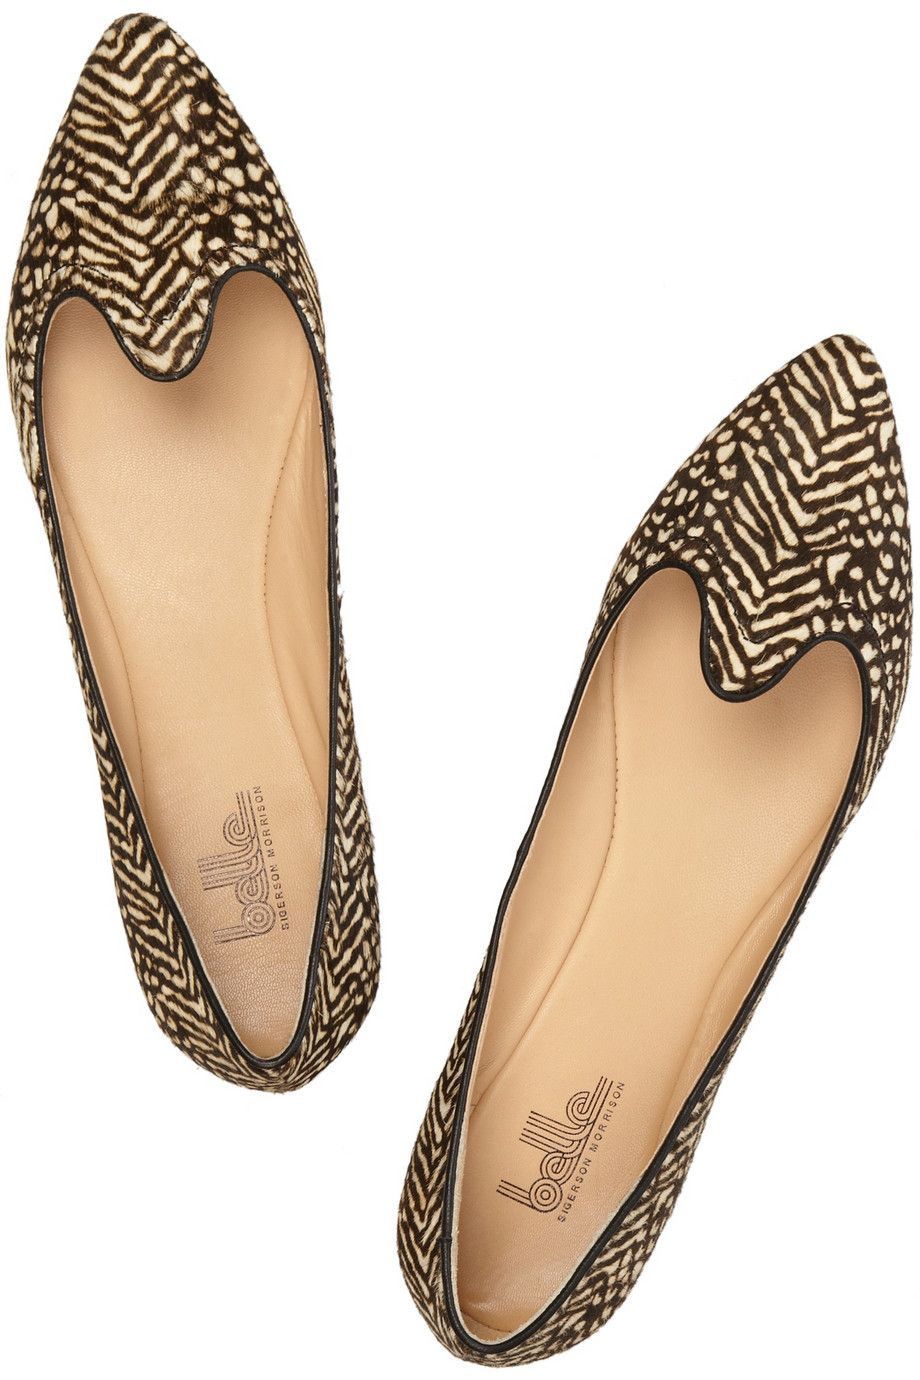 FOOTWEAR - Loafers Belle Best Wholesale Sale Online Sale Clearance Store Free Shipping Extremely G9M1lg